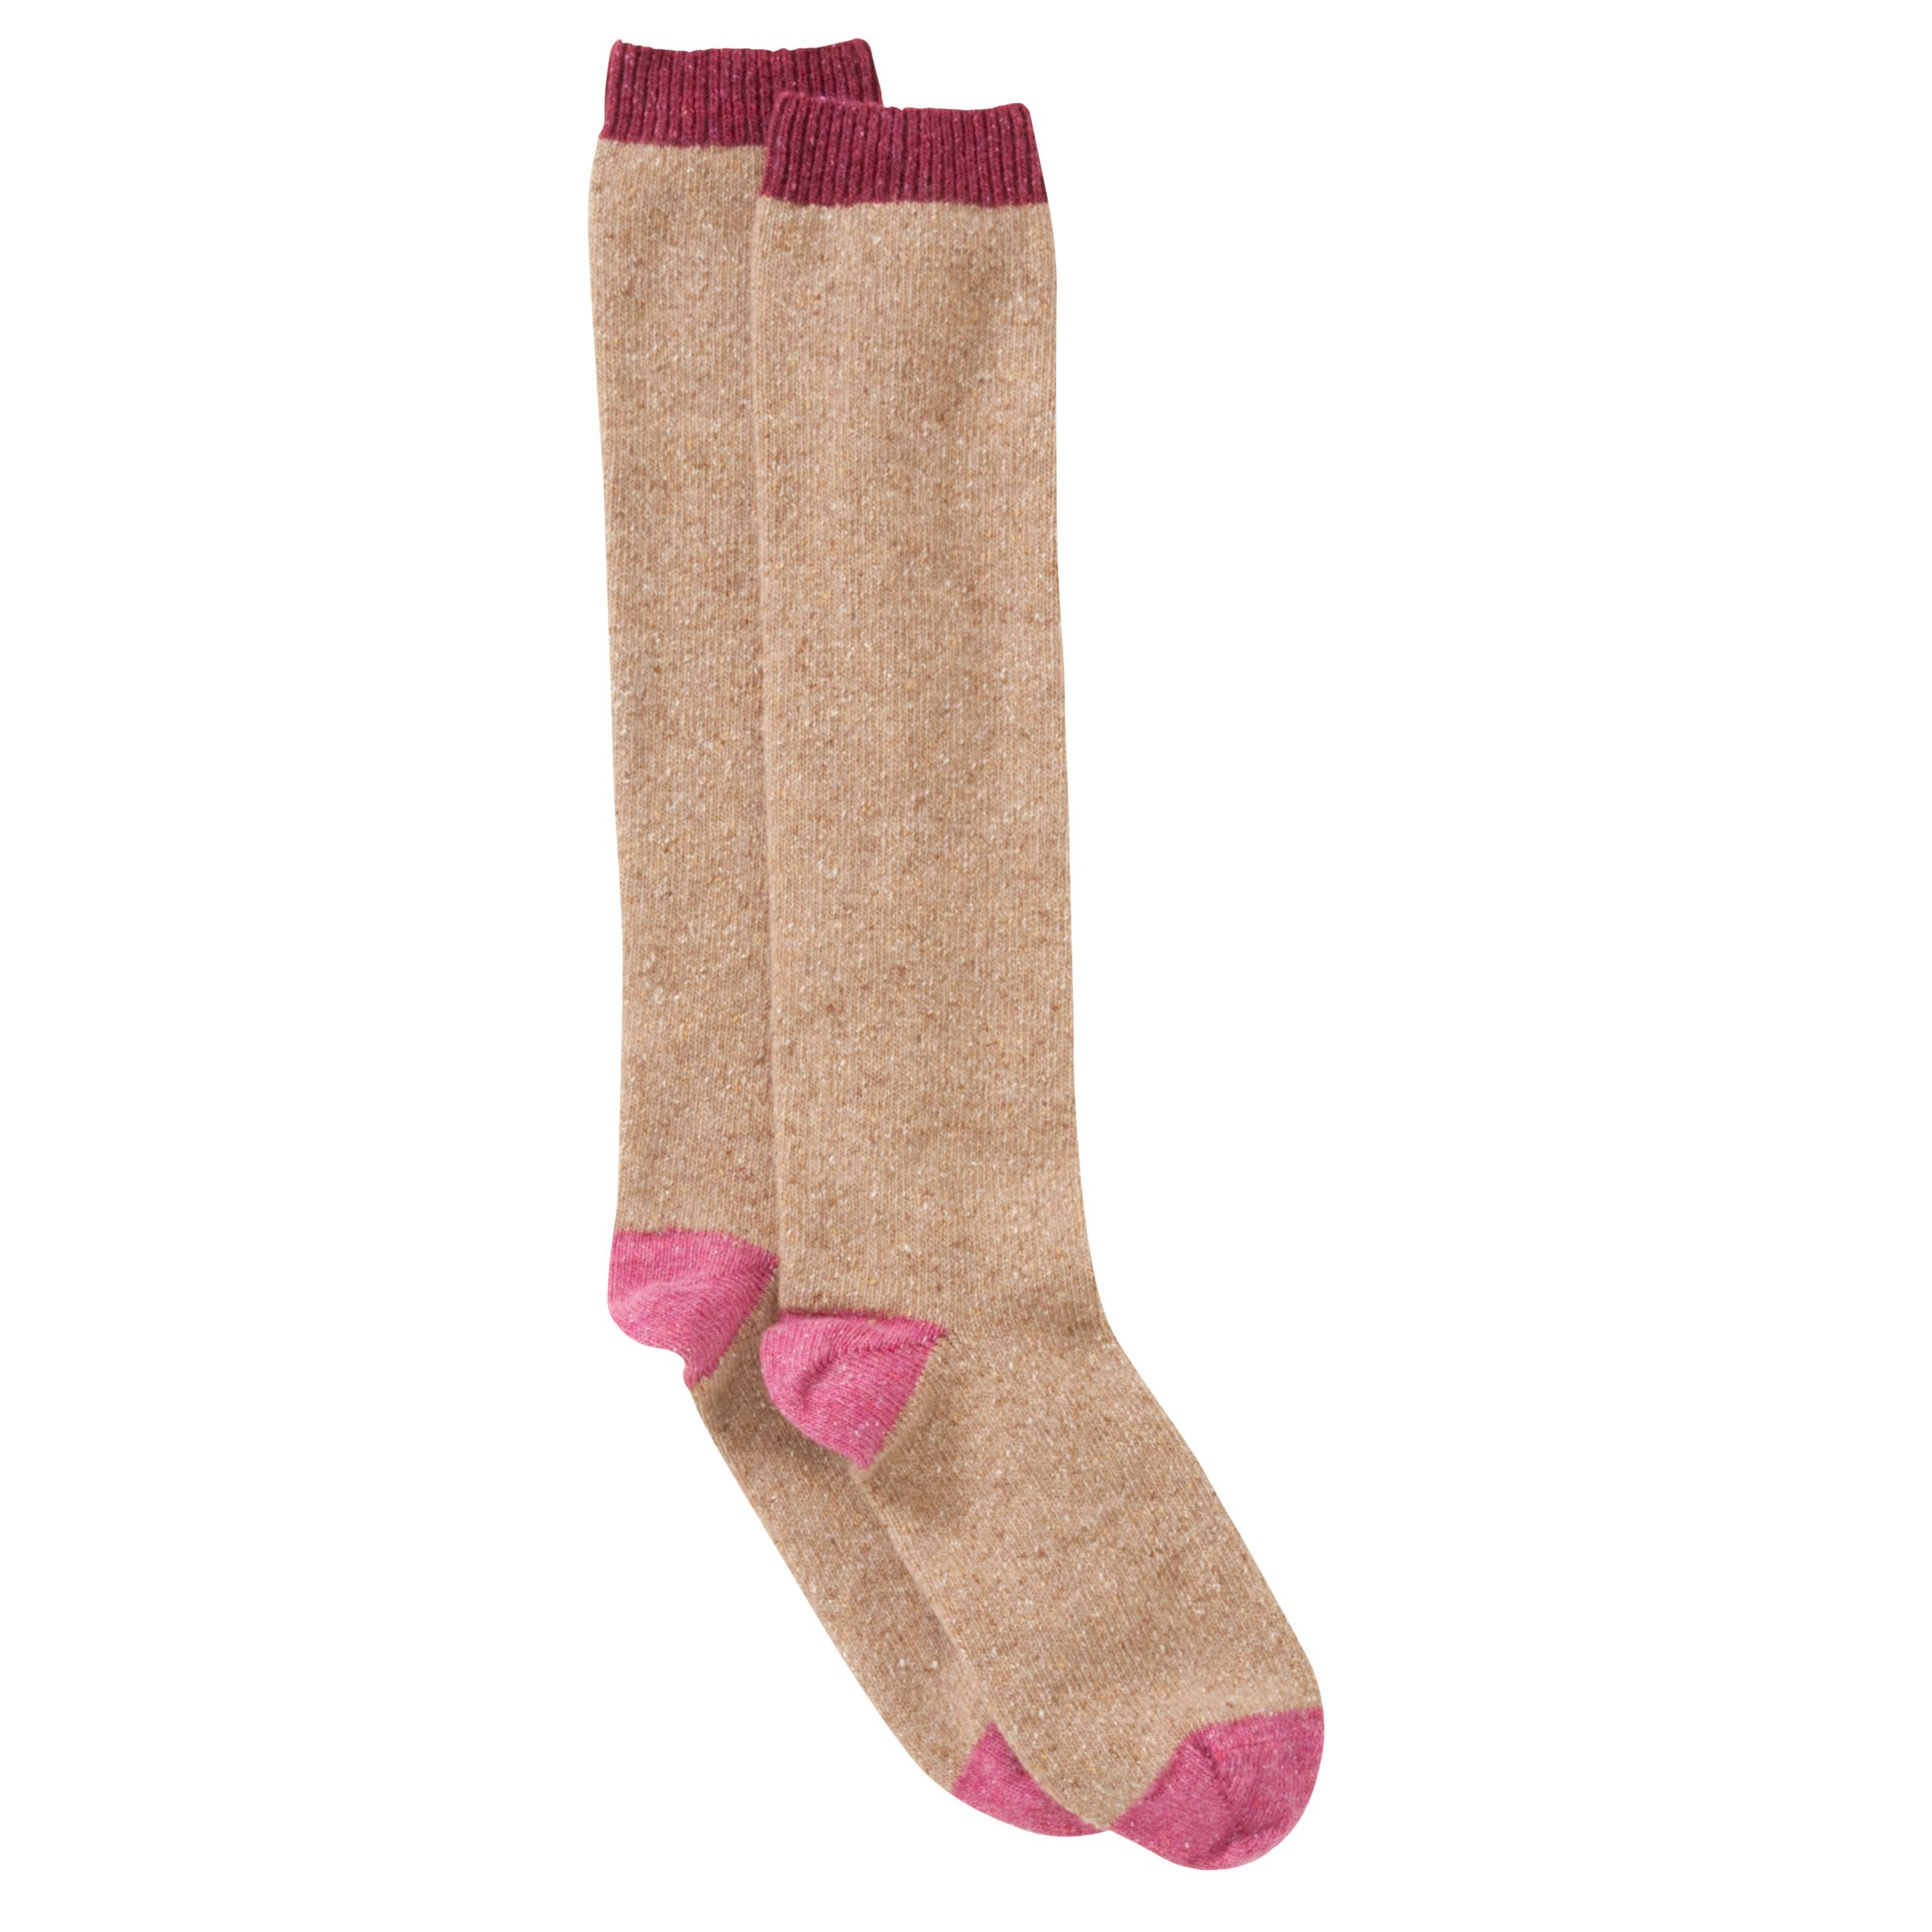 John Lewis Wool Silk Blend Heel and Toe Knee High Socks, Pink